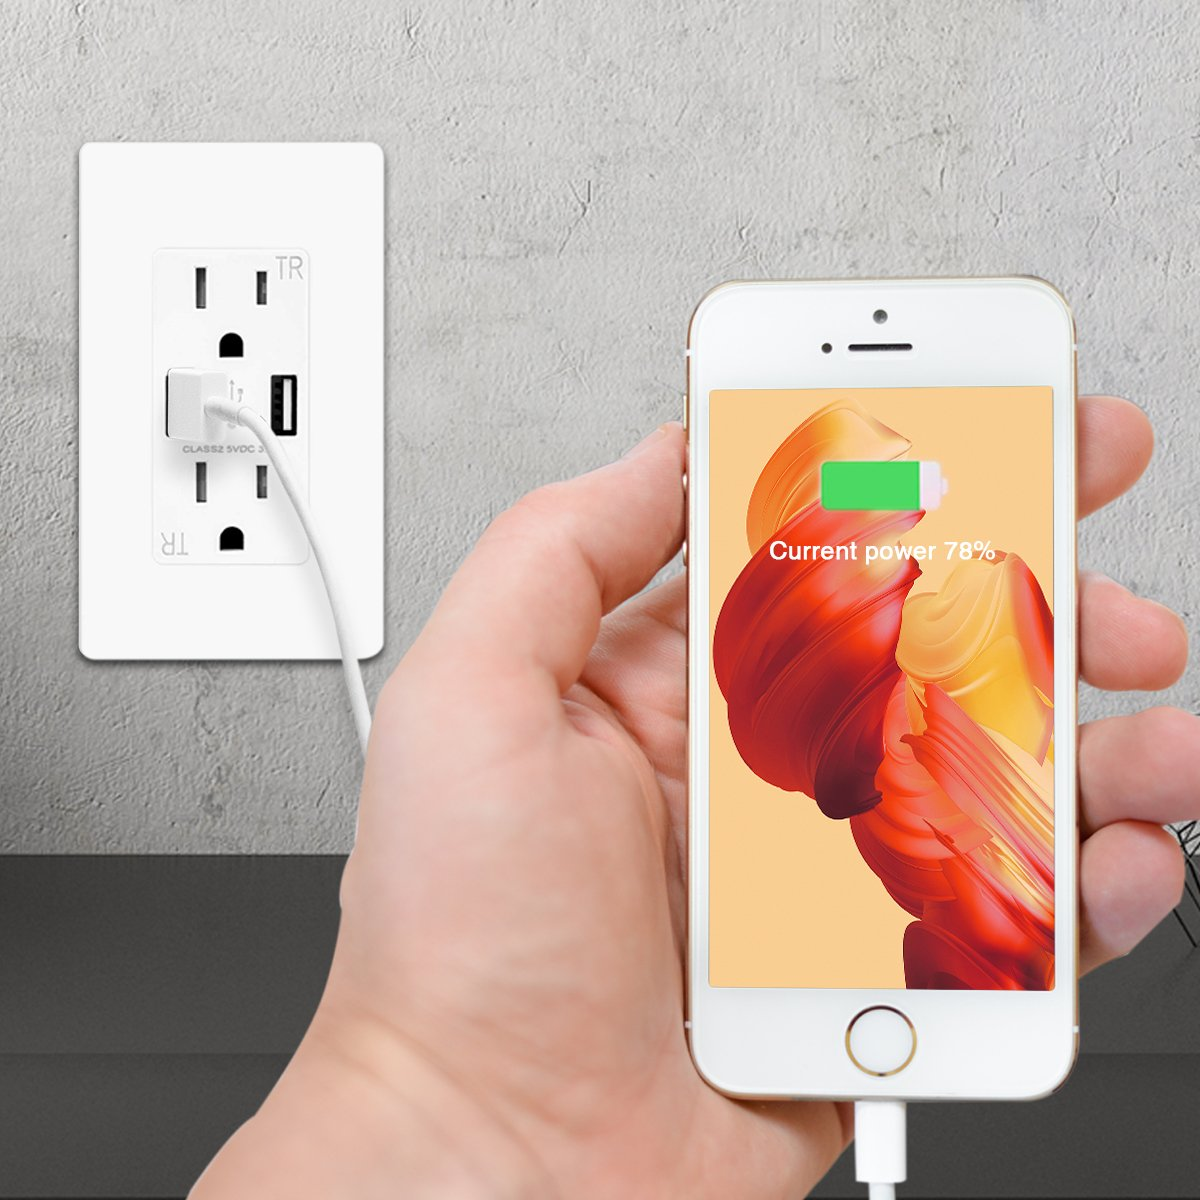 TOPELE Smart Fast Charger USB Outlet, Duplex Dual USB Wall Outlet with 15Amp 110V/120V Tamper-Resistant Electric Receptacle, Childproof USB Outlet Plug, UL Listed, White by TOPELE (Image #5)